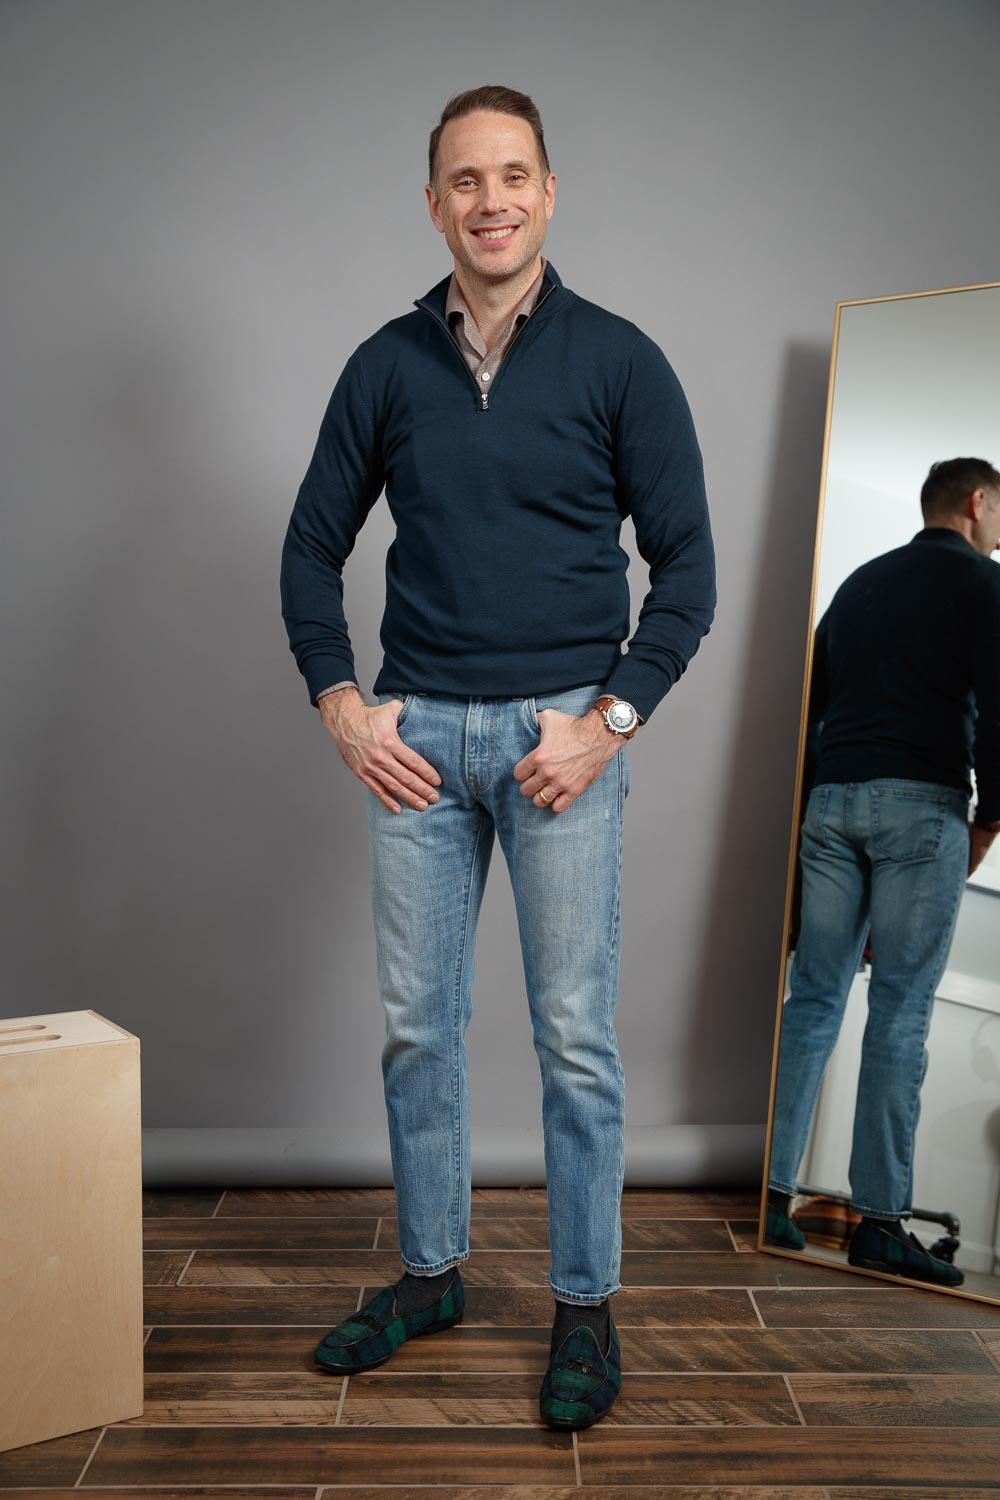 mens-casual-work-from-home-outfit-style-light-wash-jeans-brown-shirt-navy-zip-up-sweater-speedmaster-blackwatch-plaid-belgian-shoes